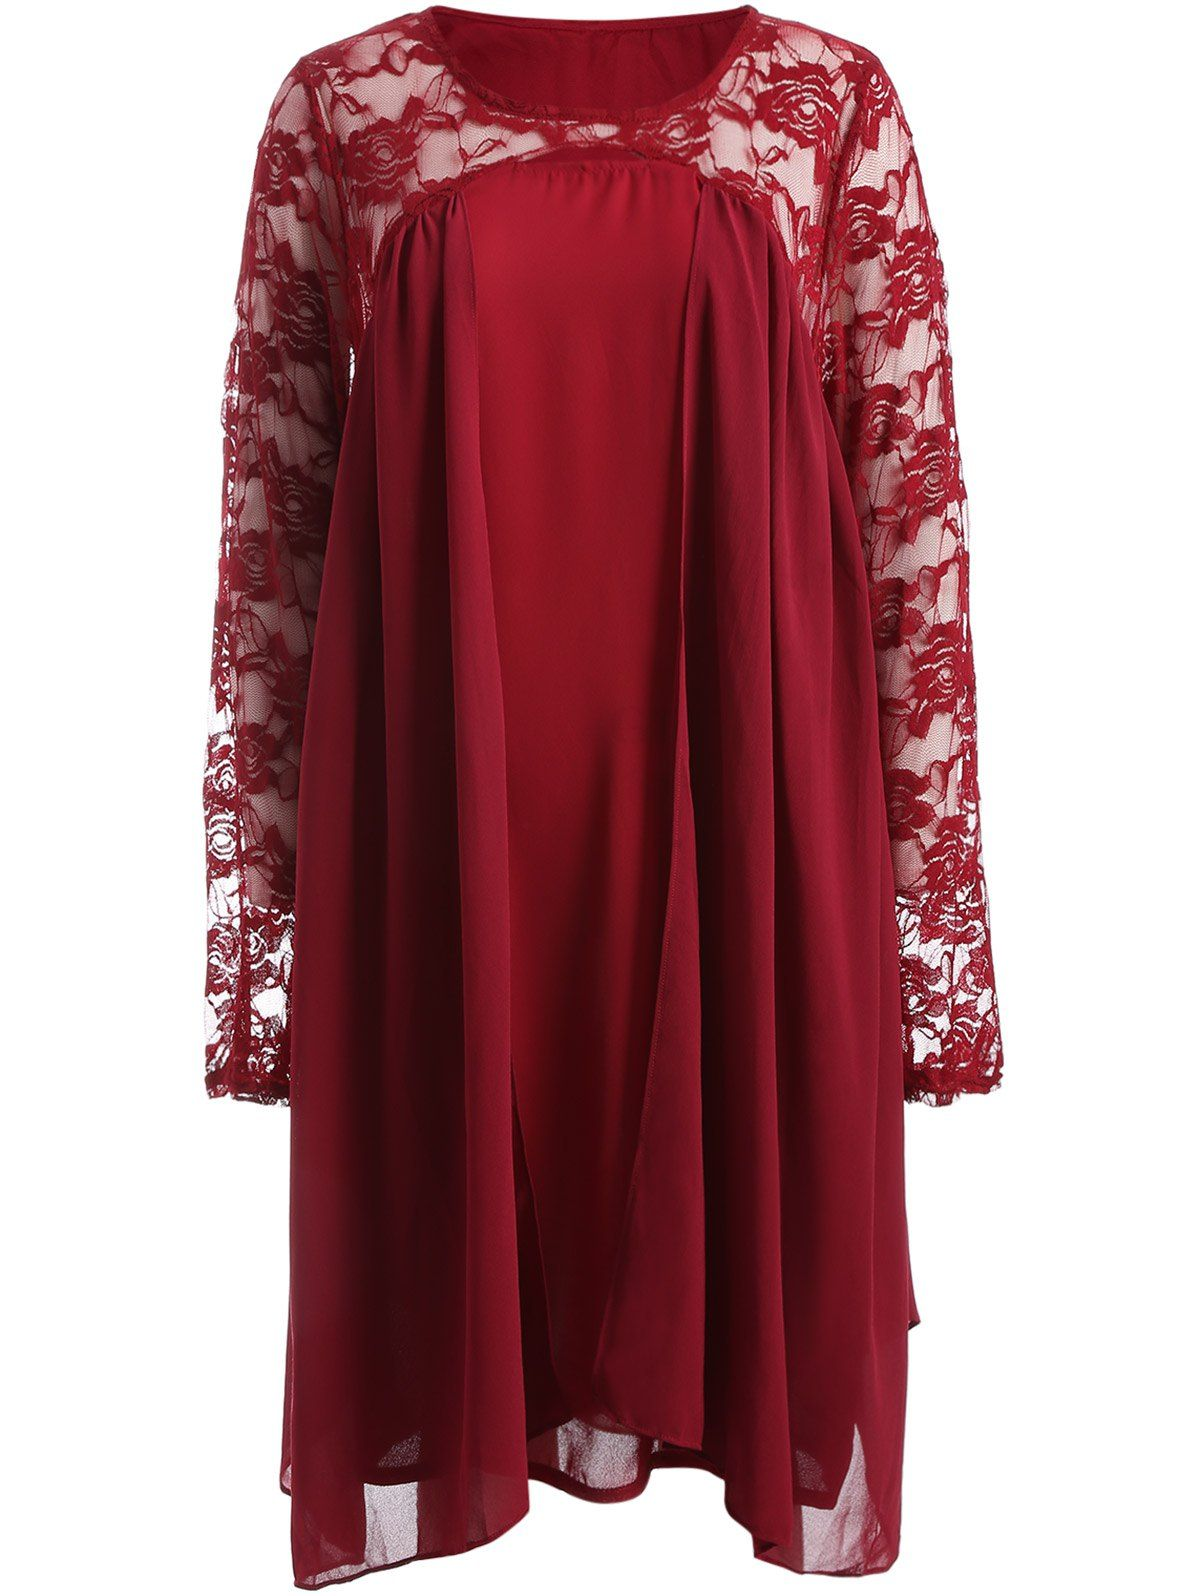 $13.39 for long sleeve lace insert plus size dress in red